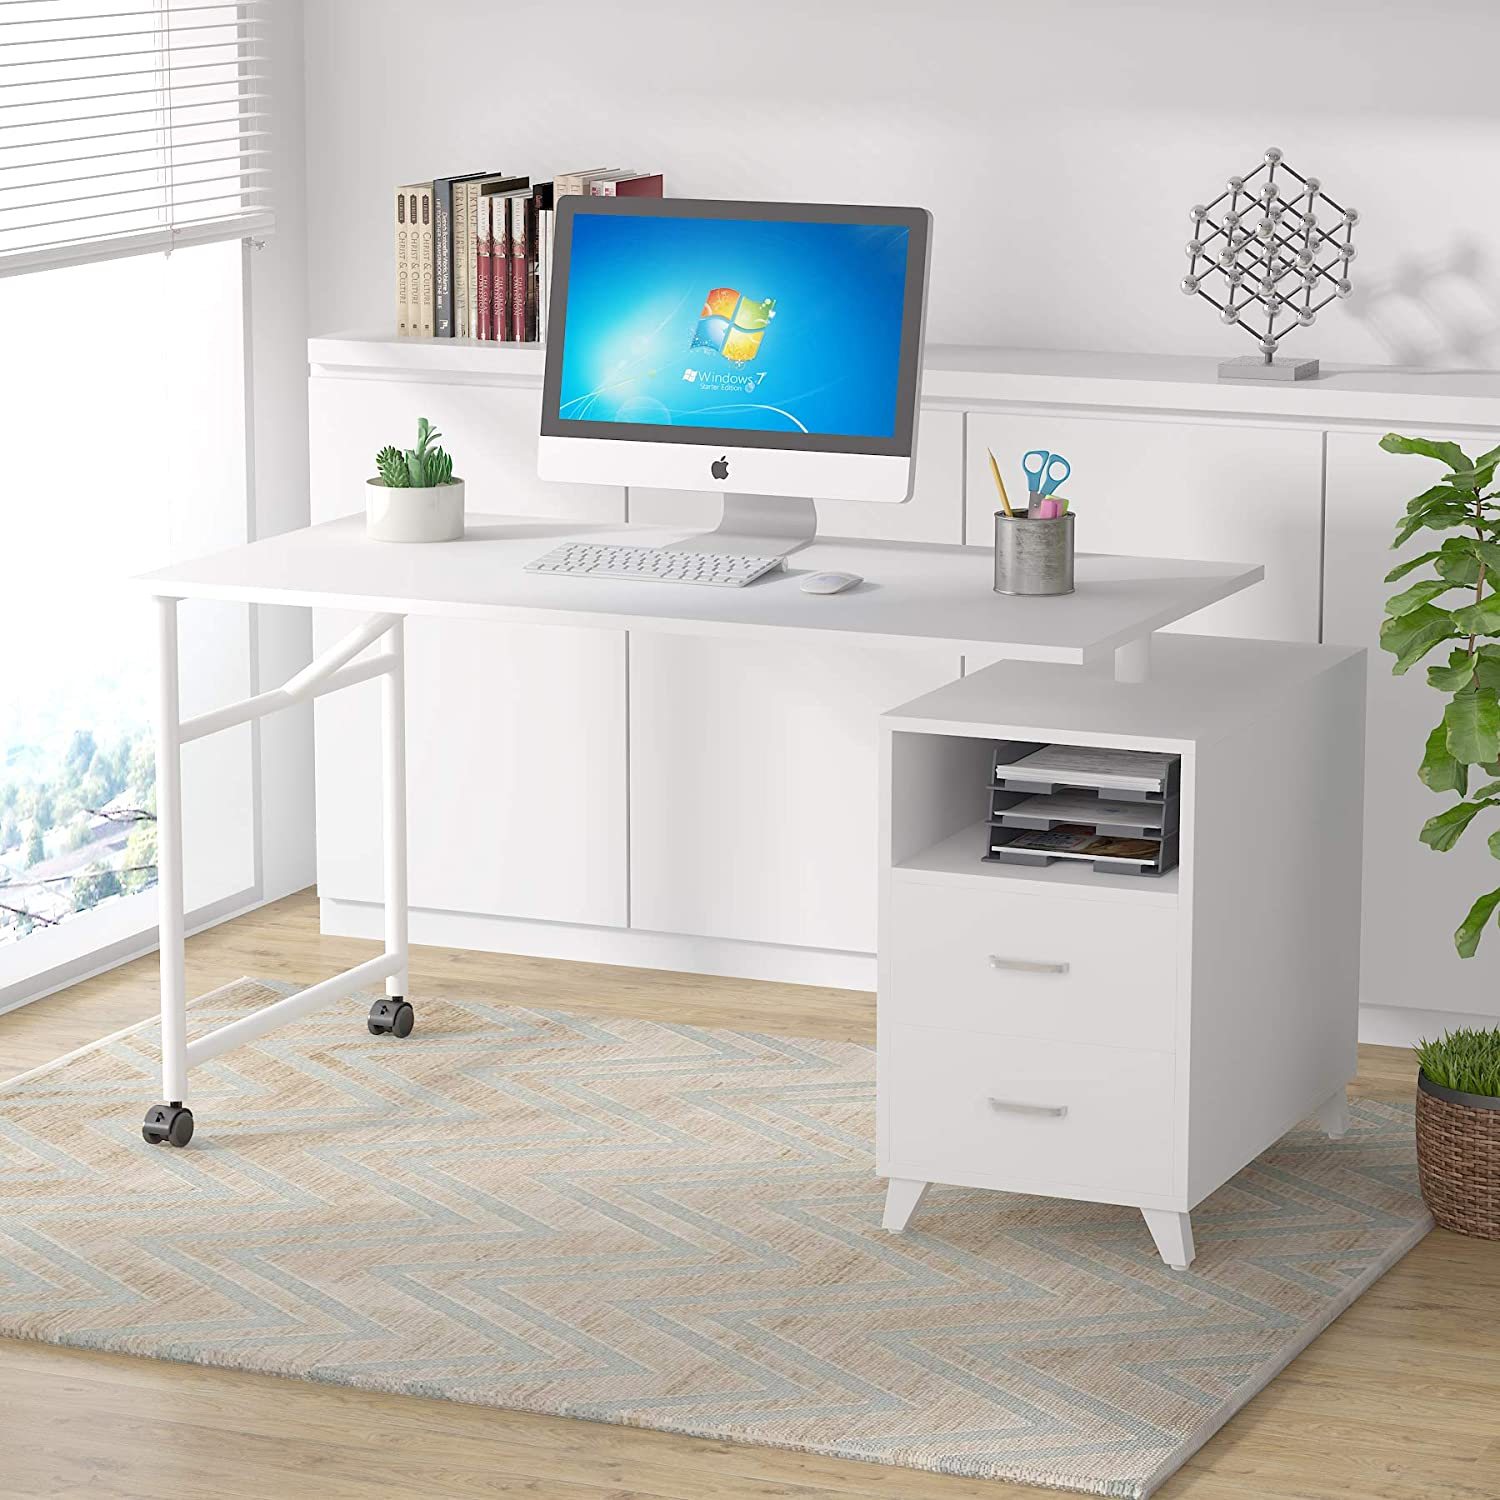 Tribesigns Max 47% OFF 360° Rotating Max 76% OFF Office w Reversible Computer Desk